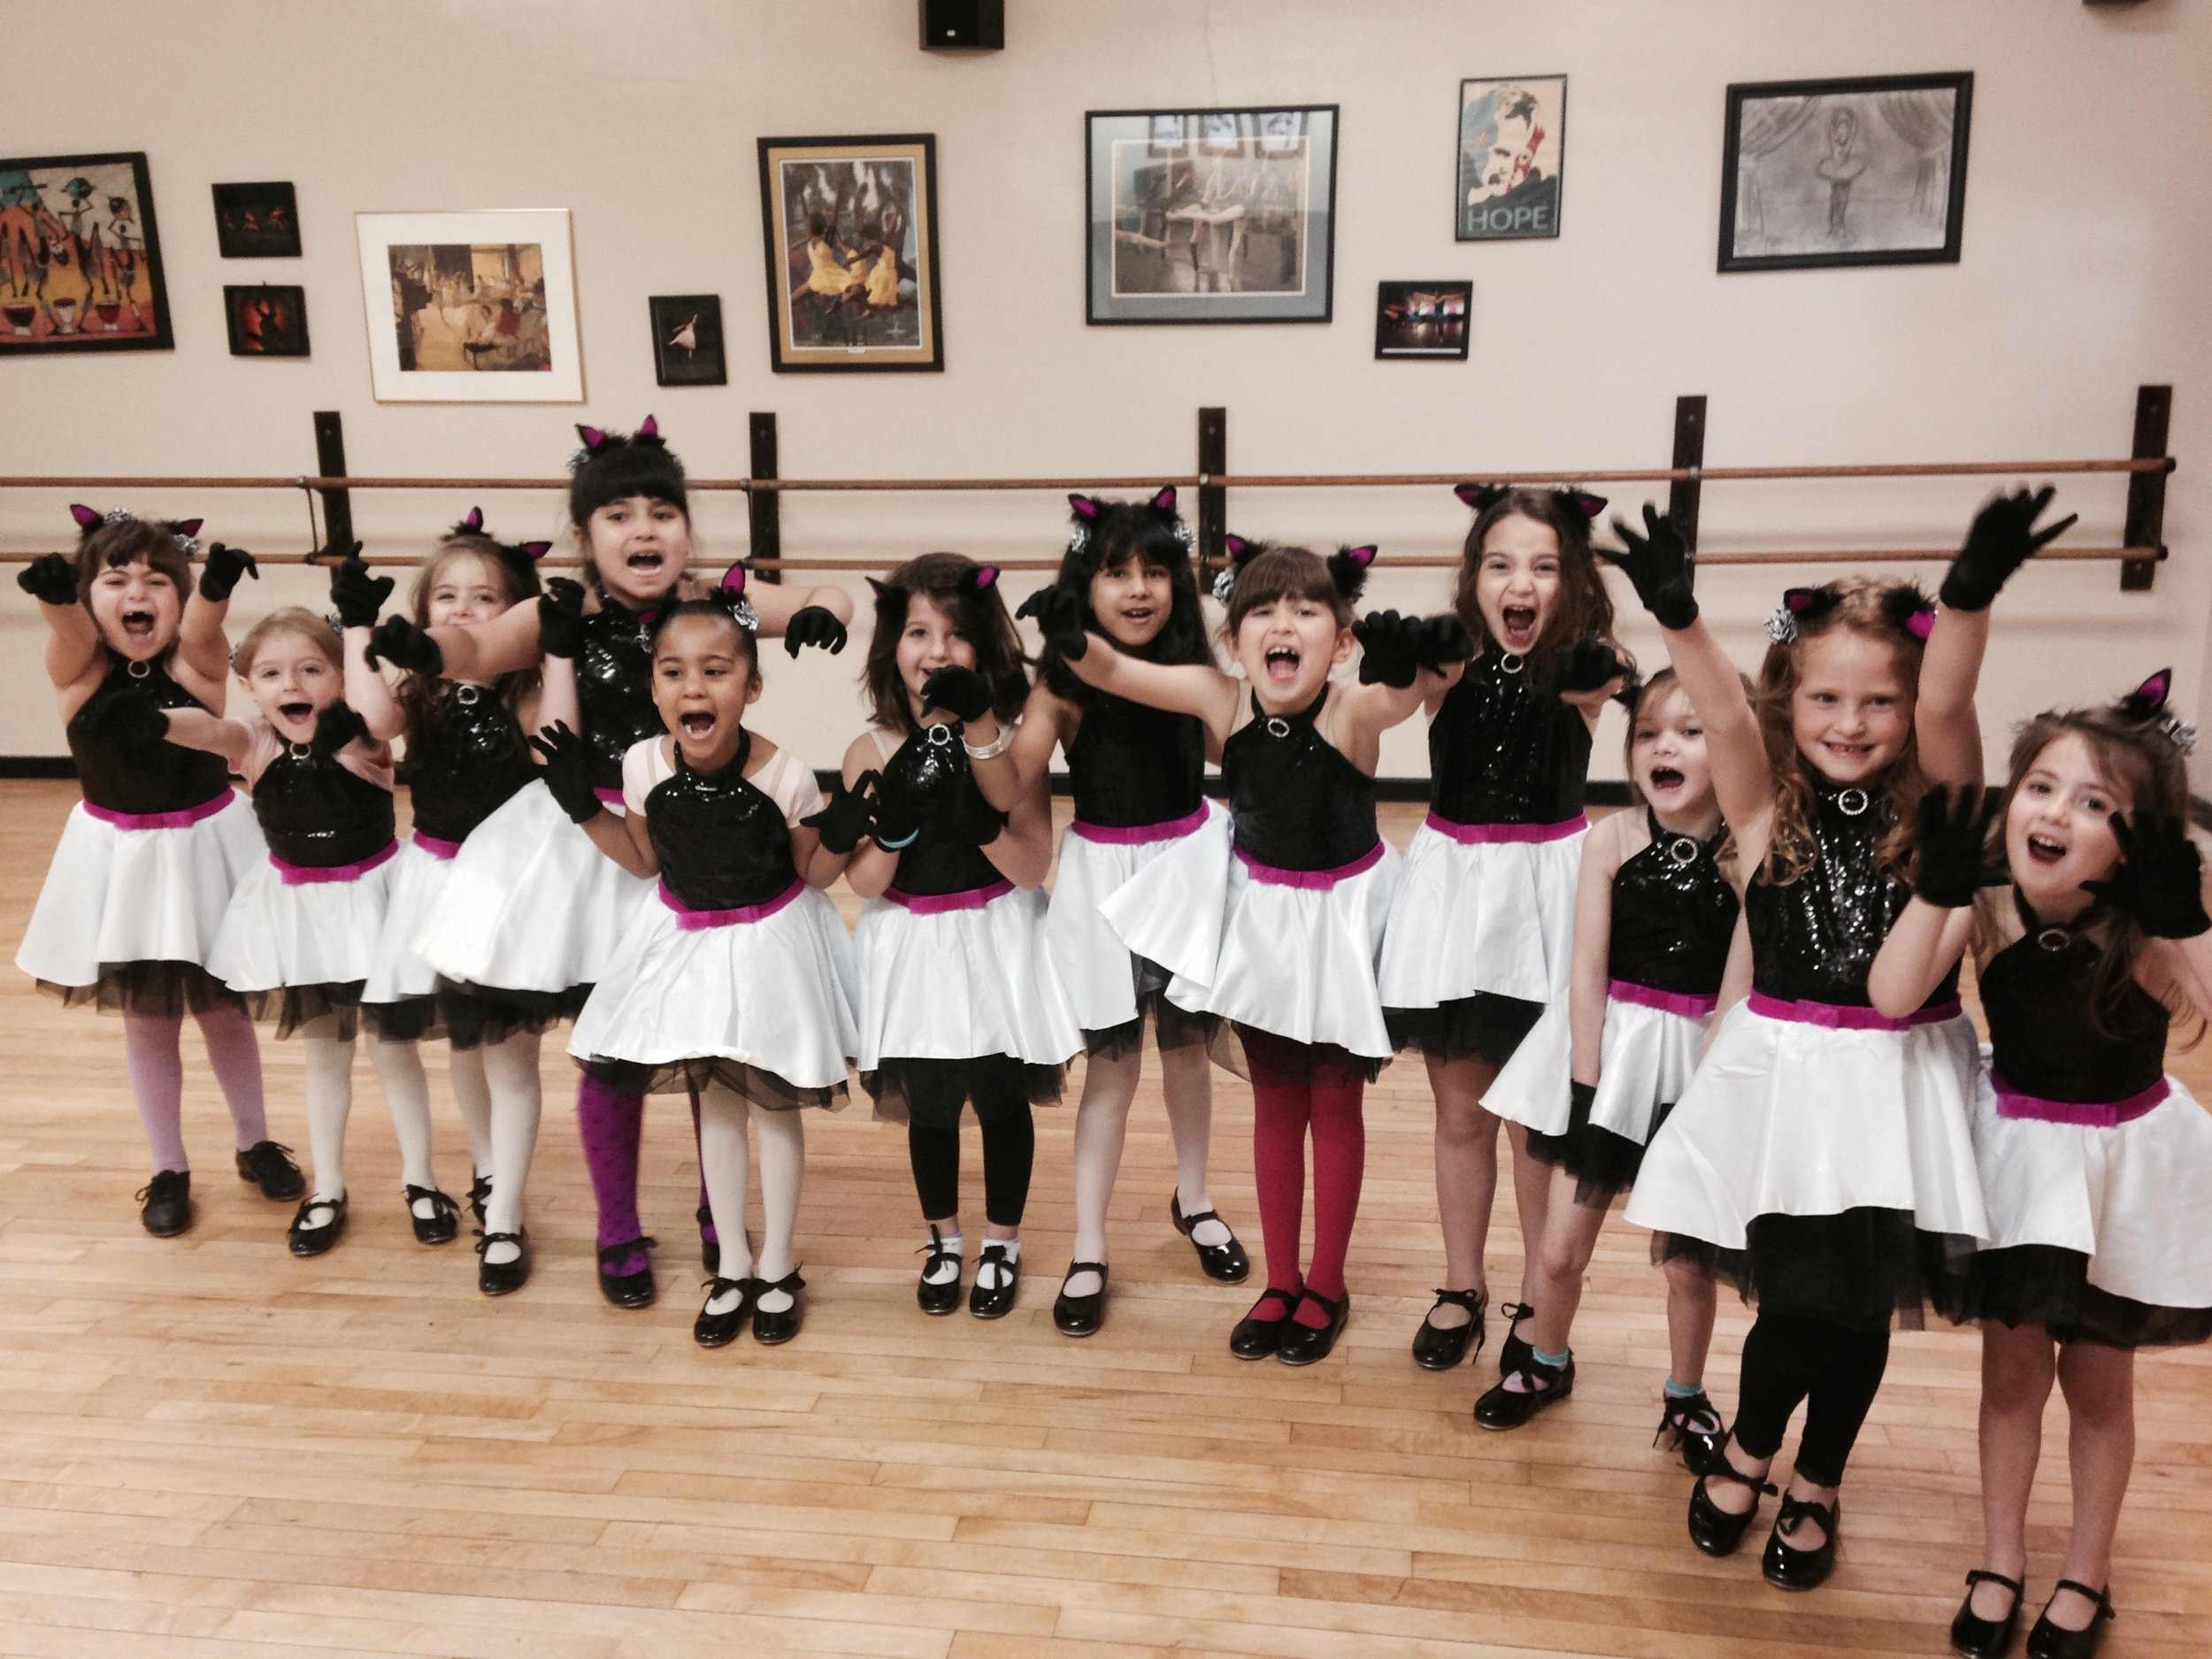 """Performing Arts Limited facilitated the work with Rogers School. The studio also donated rehearsal space for my rehearsals. The owner would say, """"We have to have each other's backs as artists."""" I couldn't agree more."""